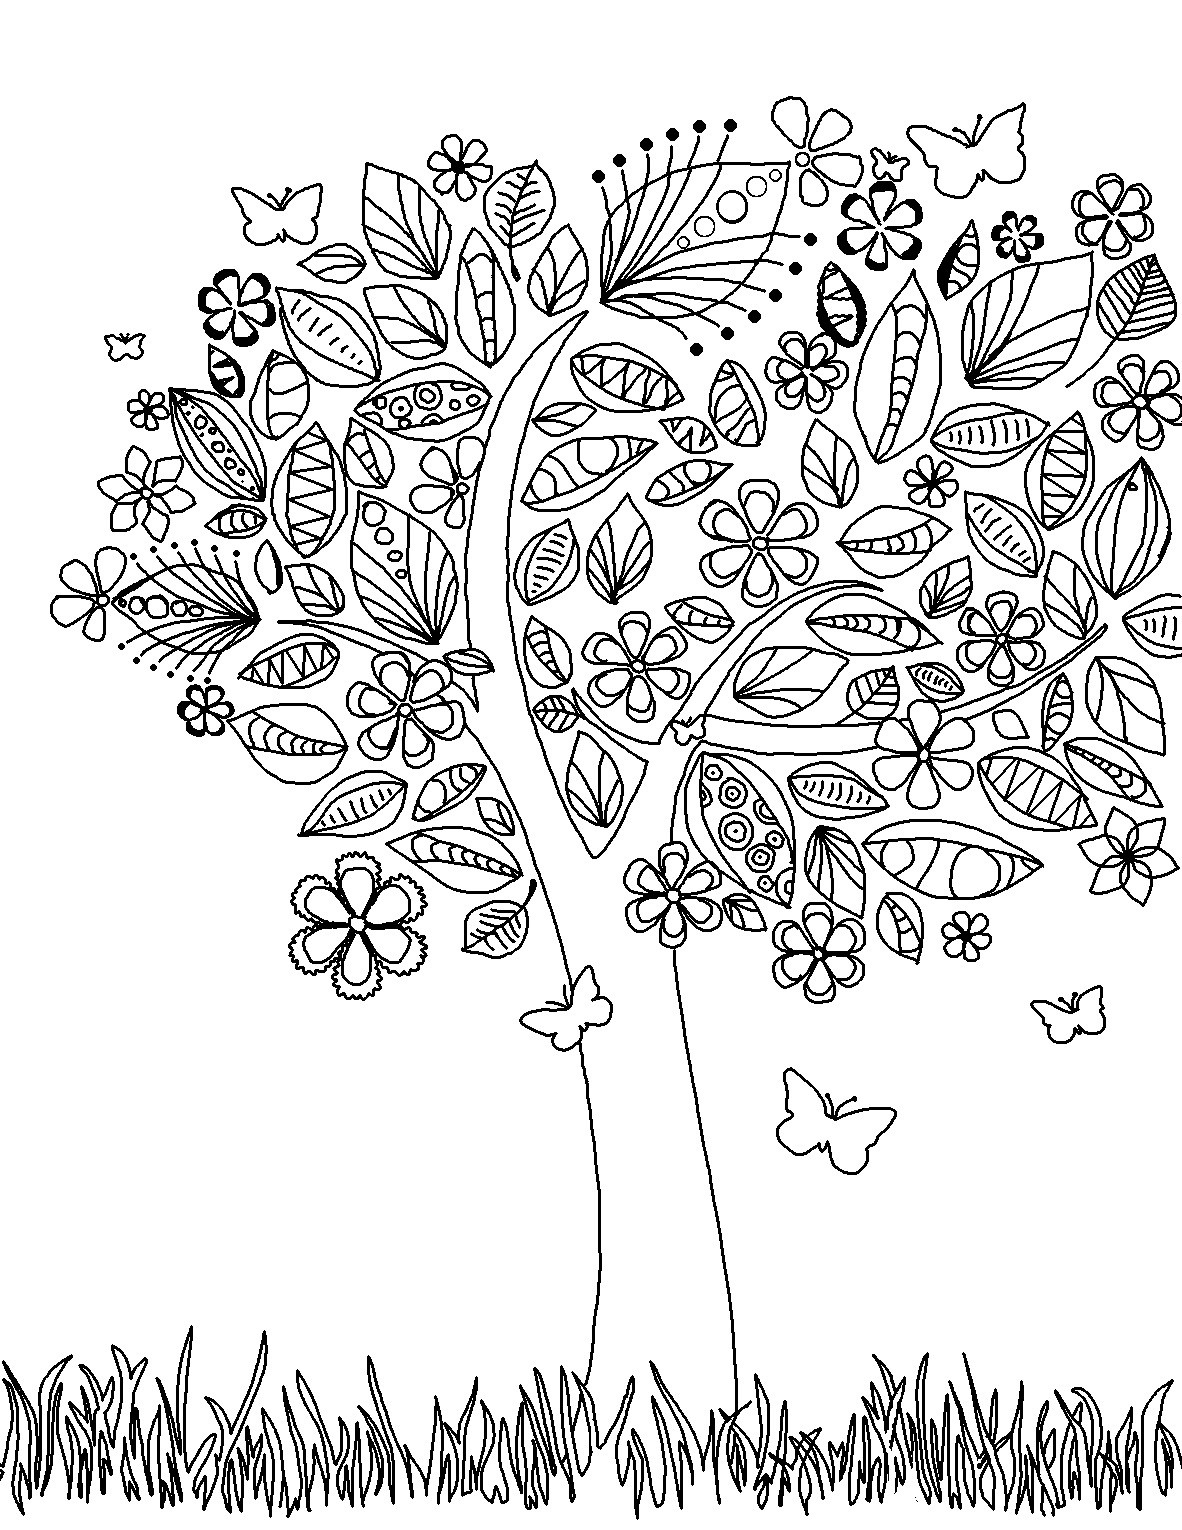 Free Coloring Pages Online Adults  Free Printable Adult Coloring Pages